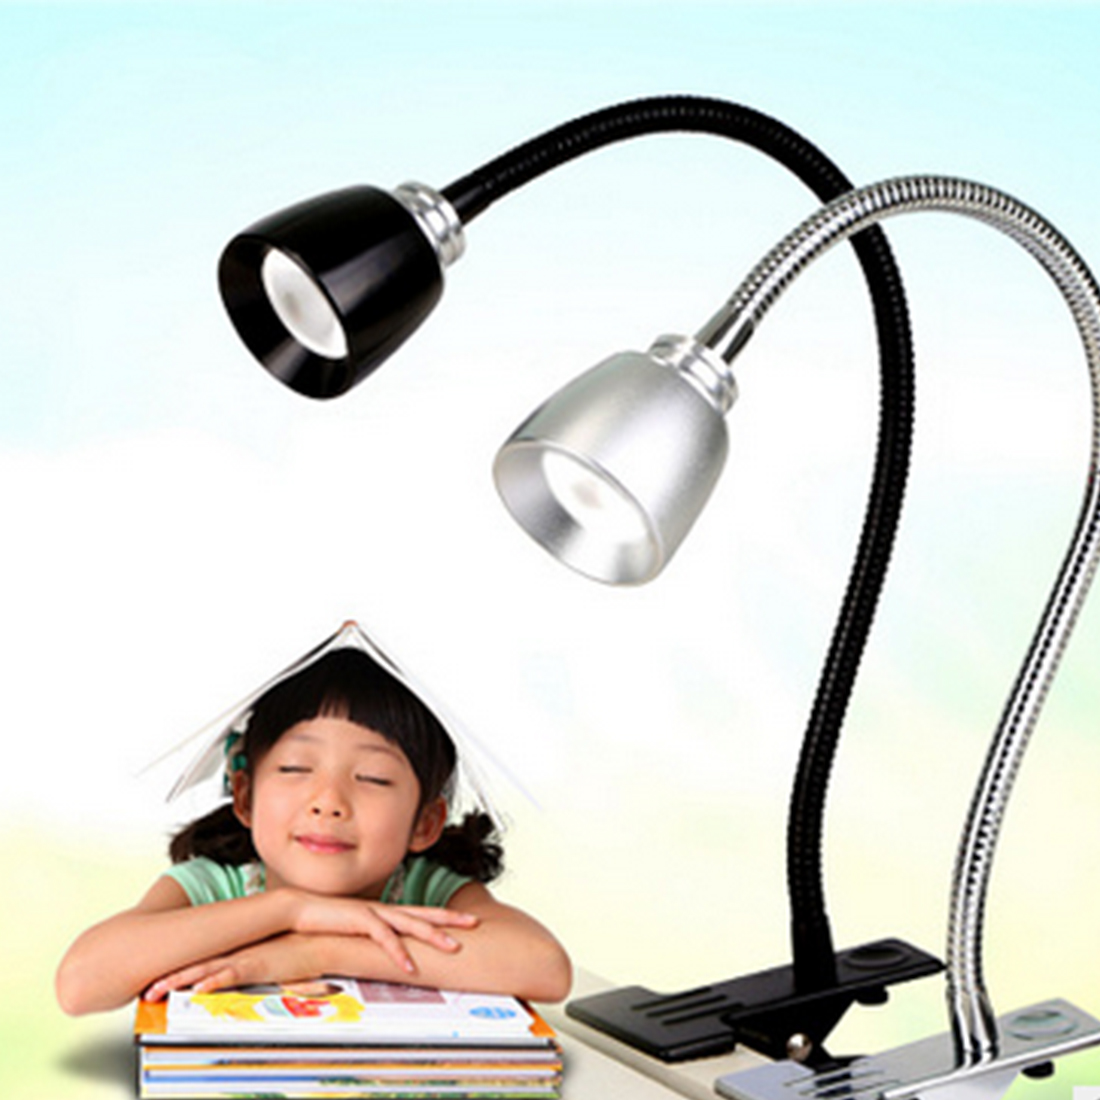 Hot USB Fan Flexible LED Light Desk Lamp With Clip for Laptop PC Computer Black Gadgets Low Power Consumption new k5 led usb hat led light lamp flexible variety of colors for notebook laptop pc computer blue white yellow